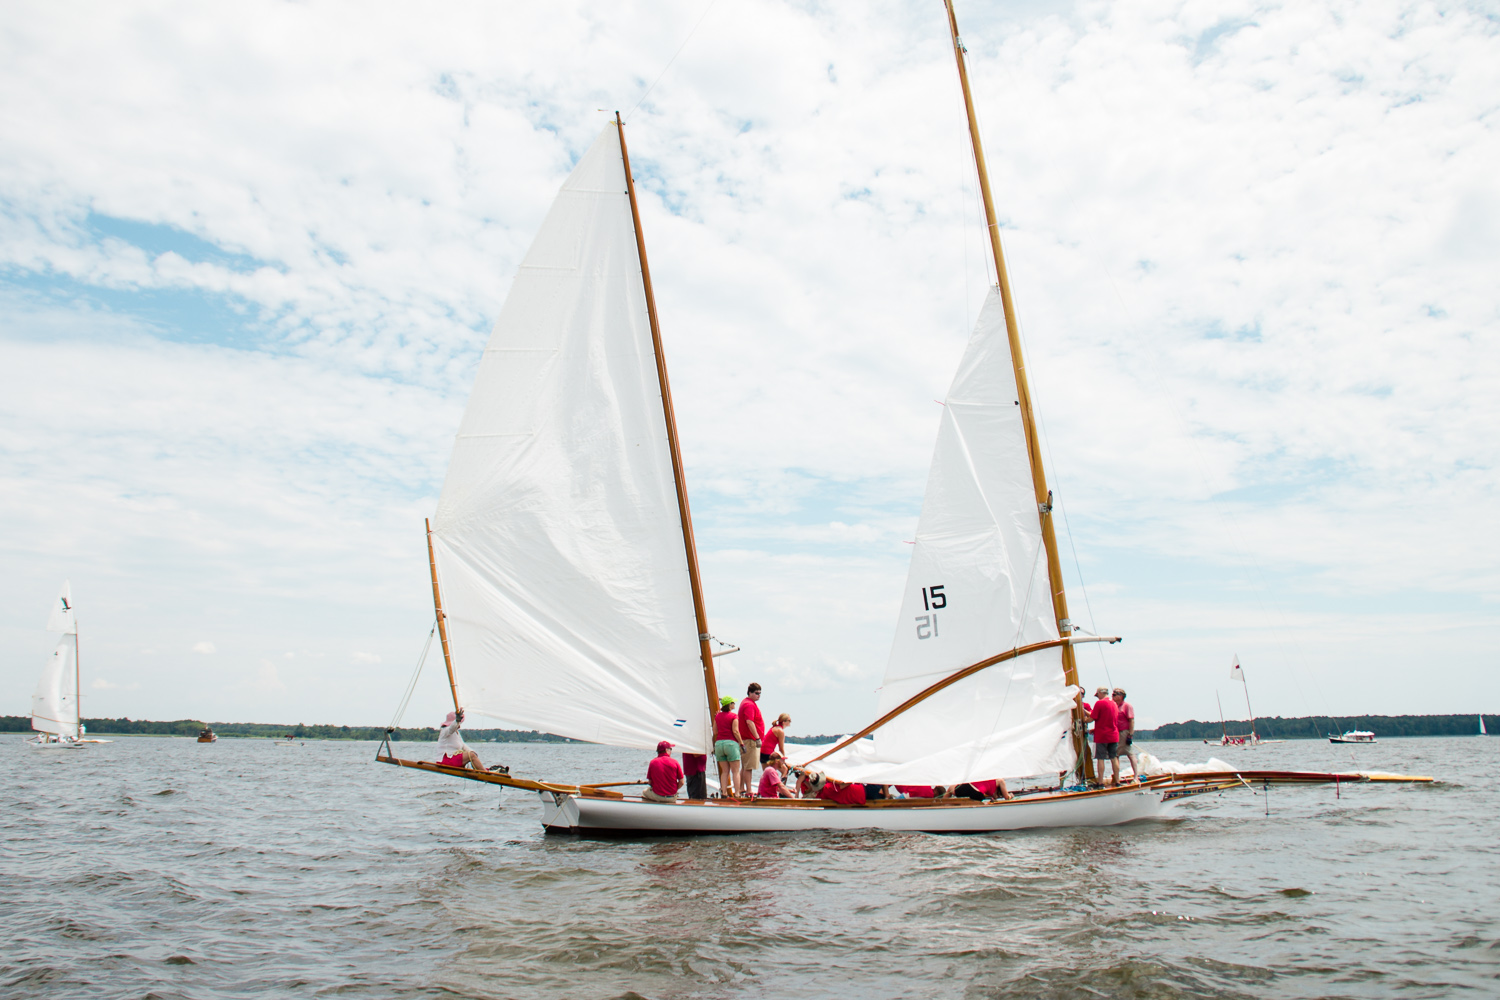 Log-Canoe-Race-at-Rock-Hall-Yacht-Club-July-2016-ss-3.jpg